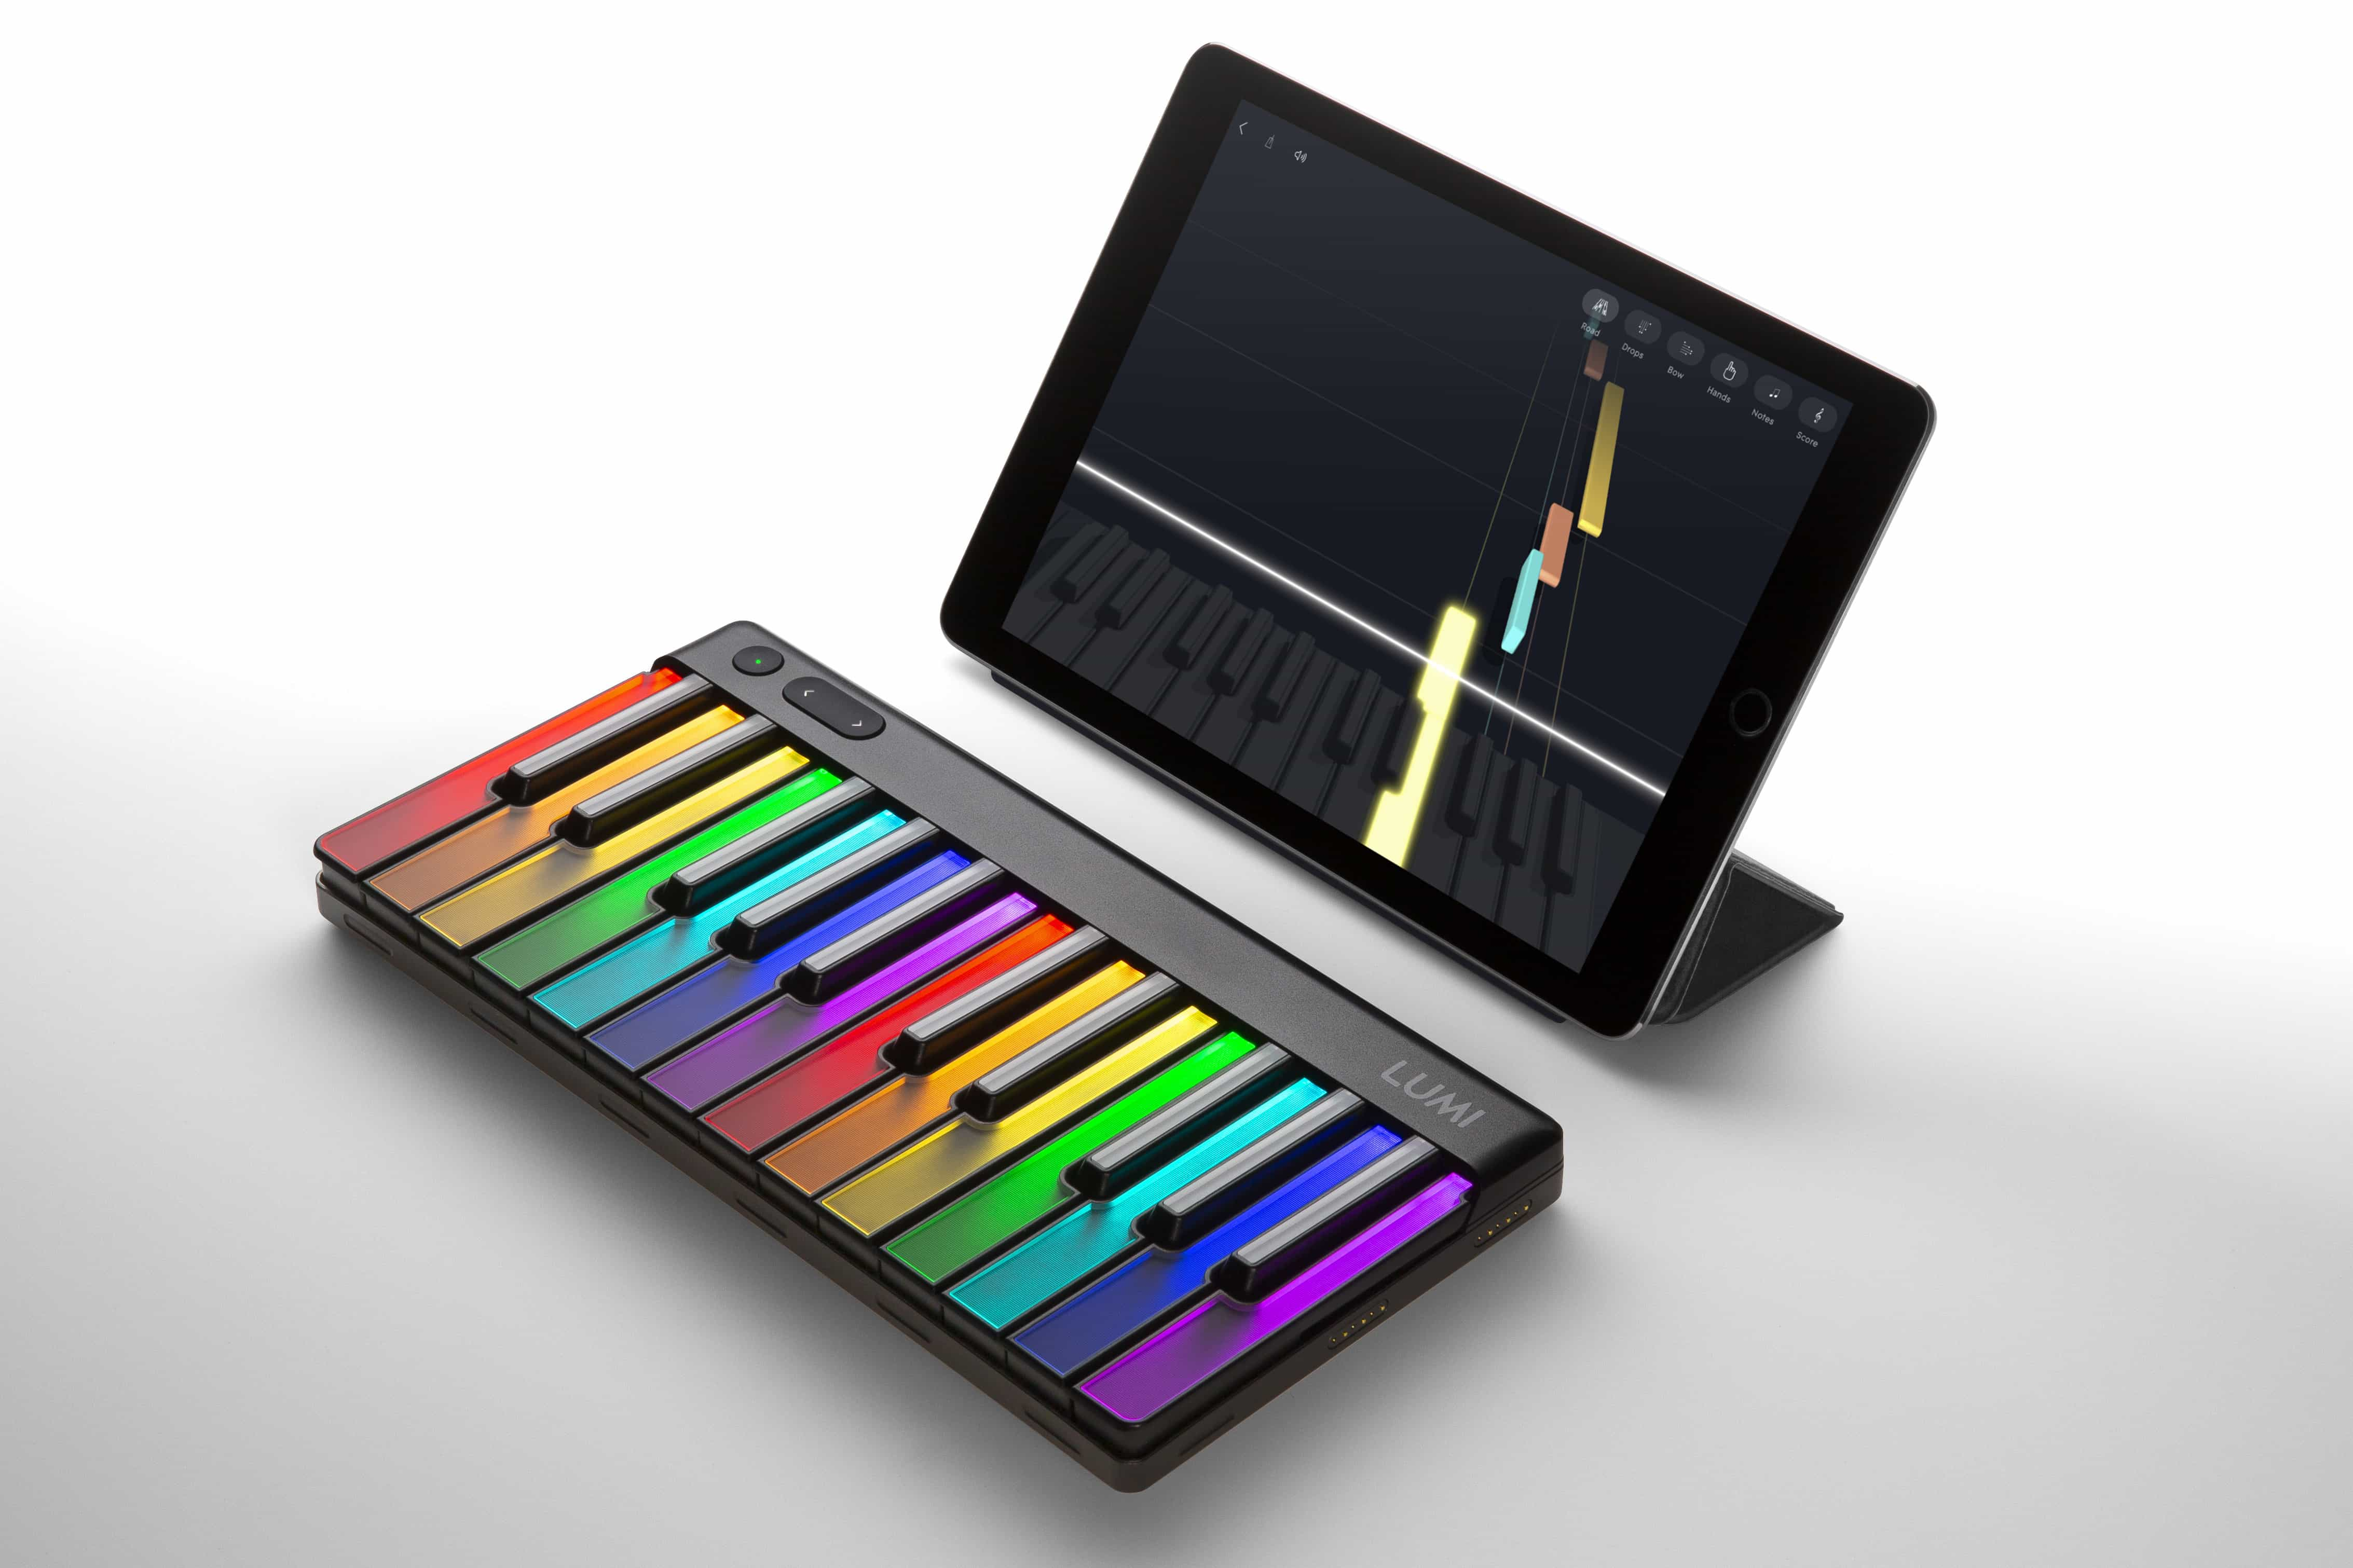 Roli Lumi keyboard lights up with pretty colors!